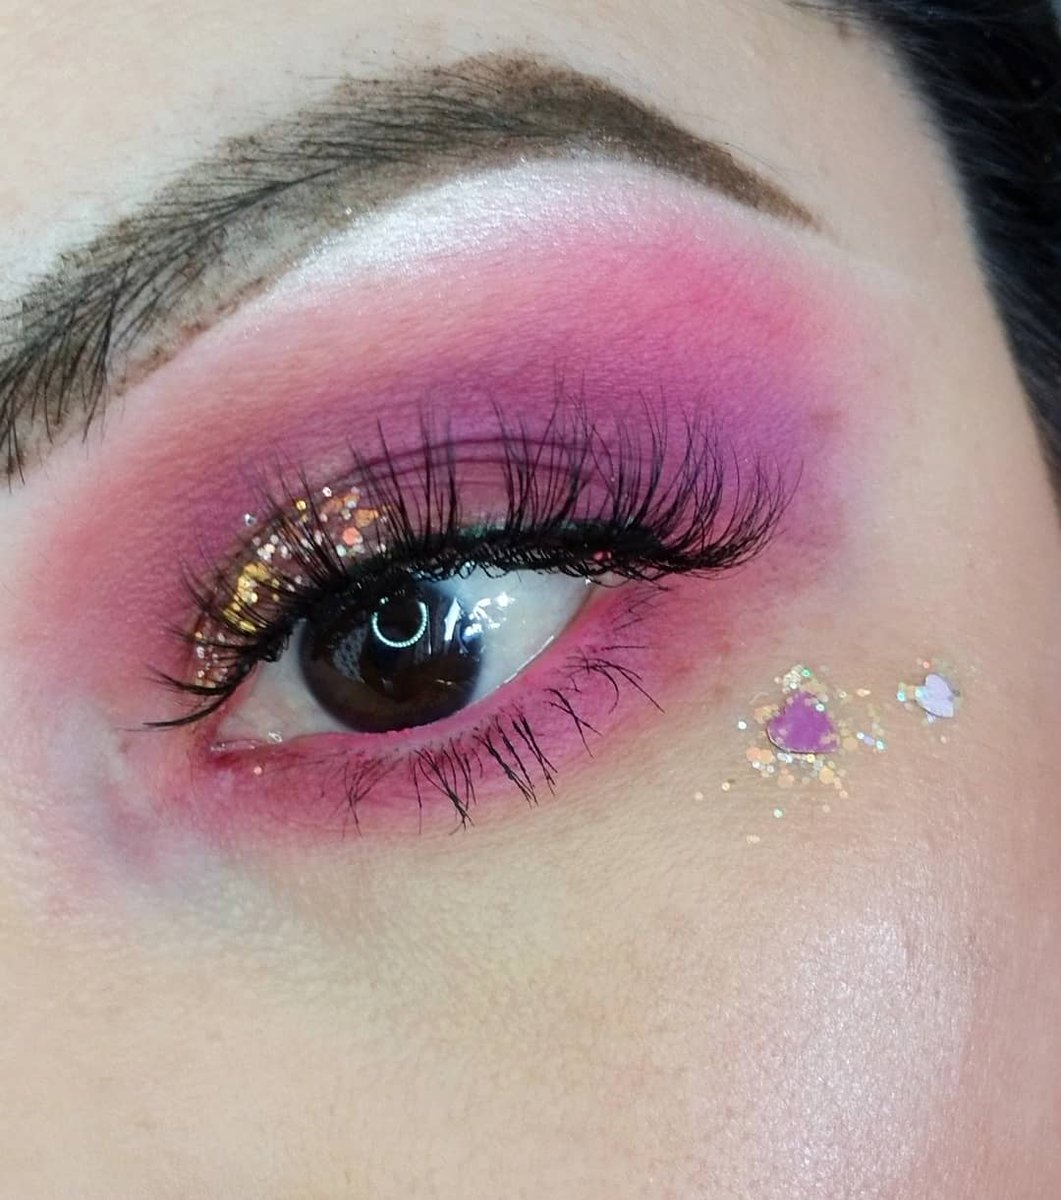 Love Is In The Air  Products Used  Foundation: @bareminerals Made2fit  Eyes: @blushtribe The laila palette  Glitter: @colourpopcosmetics Hopeless Romantic  #beauty #makeup  #motd #makeuppage #valentines #valentinesmakeuplookpic.twitter.com/7shp4PGdNL